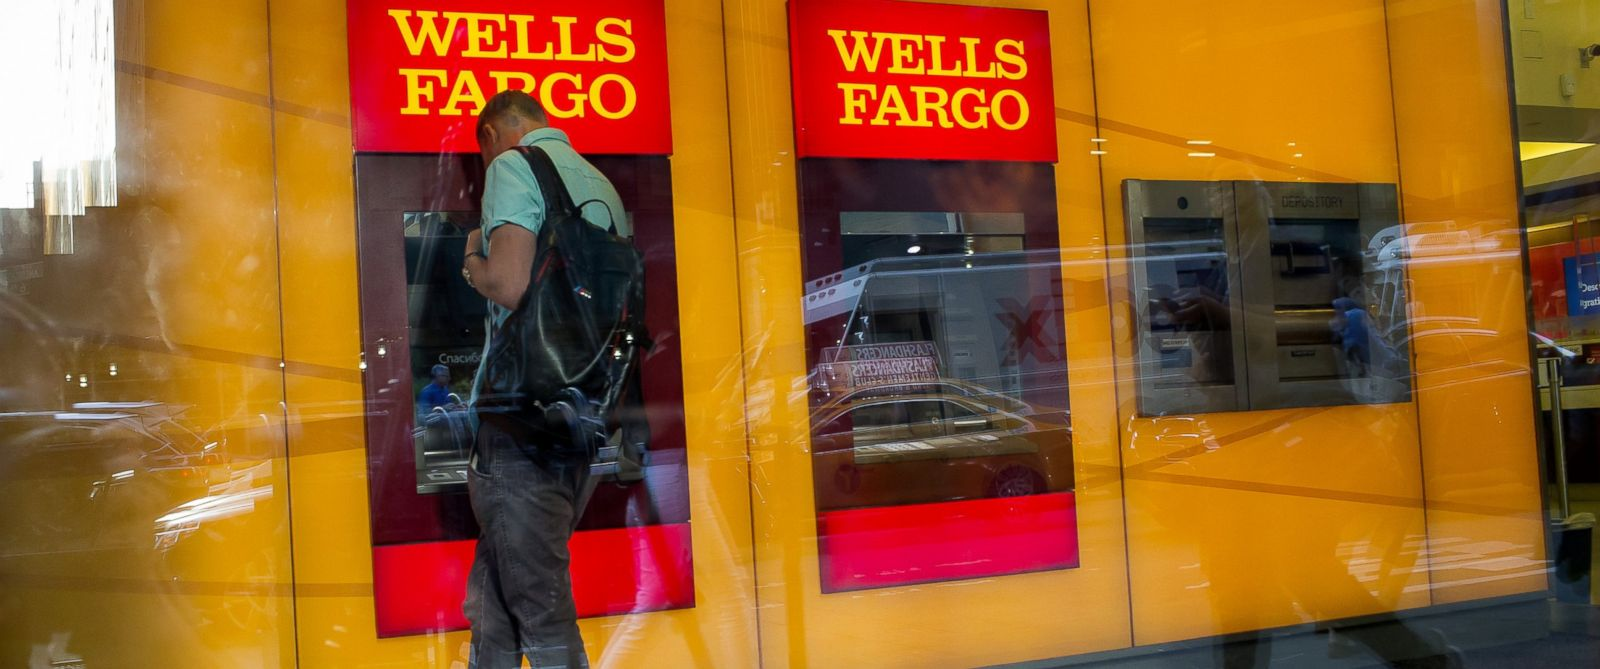 PHOTO:A man uses a Wells Fargo ATM inside a bank branch in New York, July 12, 2016.